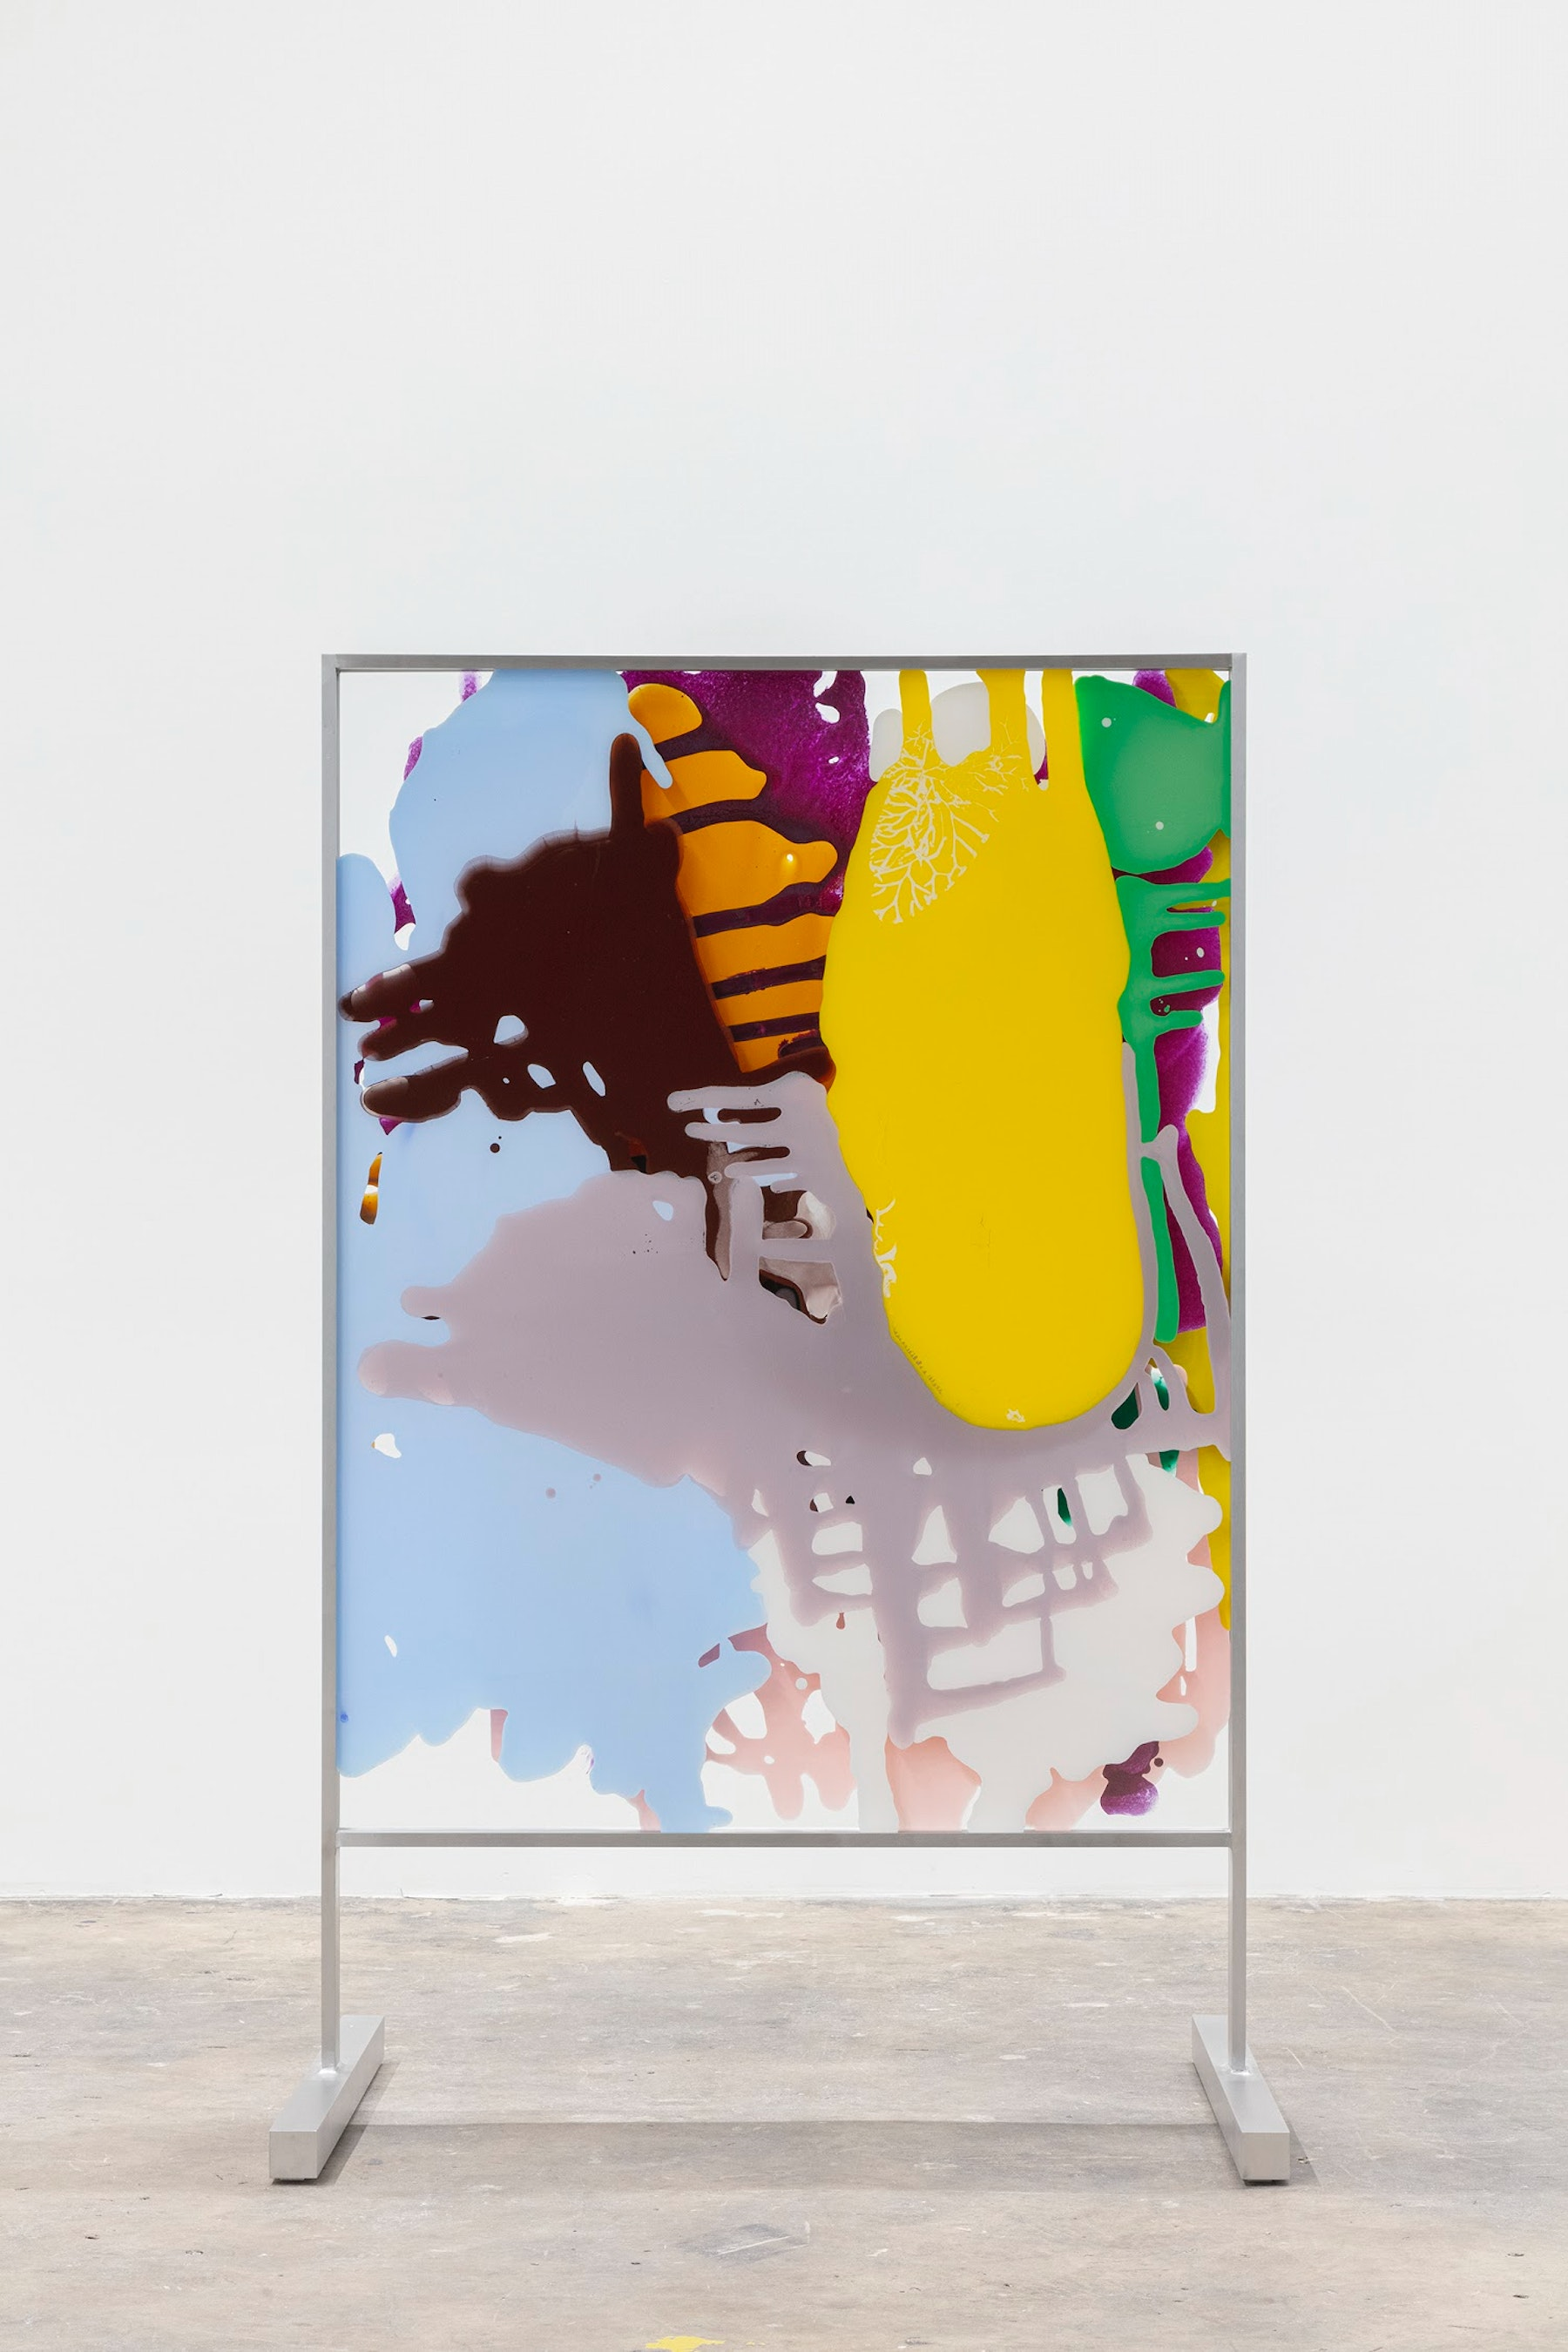 """Yunhee Min """"Vitreous Opacities (Double Floor #2),"""" 2021 Enamel, acrylic on tempered starphire glass with custom aluminum frame 65 ¹⁄₄"""" x 41"""" x 28 ¹⁄₂"""" [HxWxD] (165.74 x 104.14 x 72.39 cm) Inventory #MIN347 Courtesy of the artist and Vielmetter Los Angeles Photo credit: Evan Bedford"""